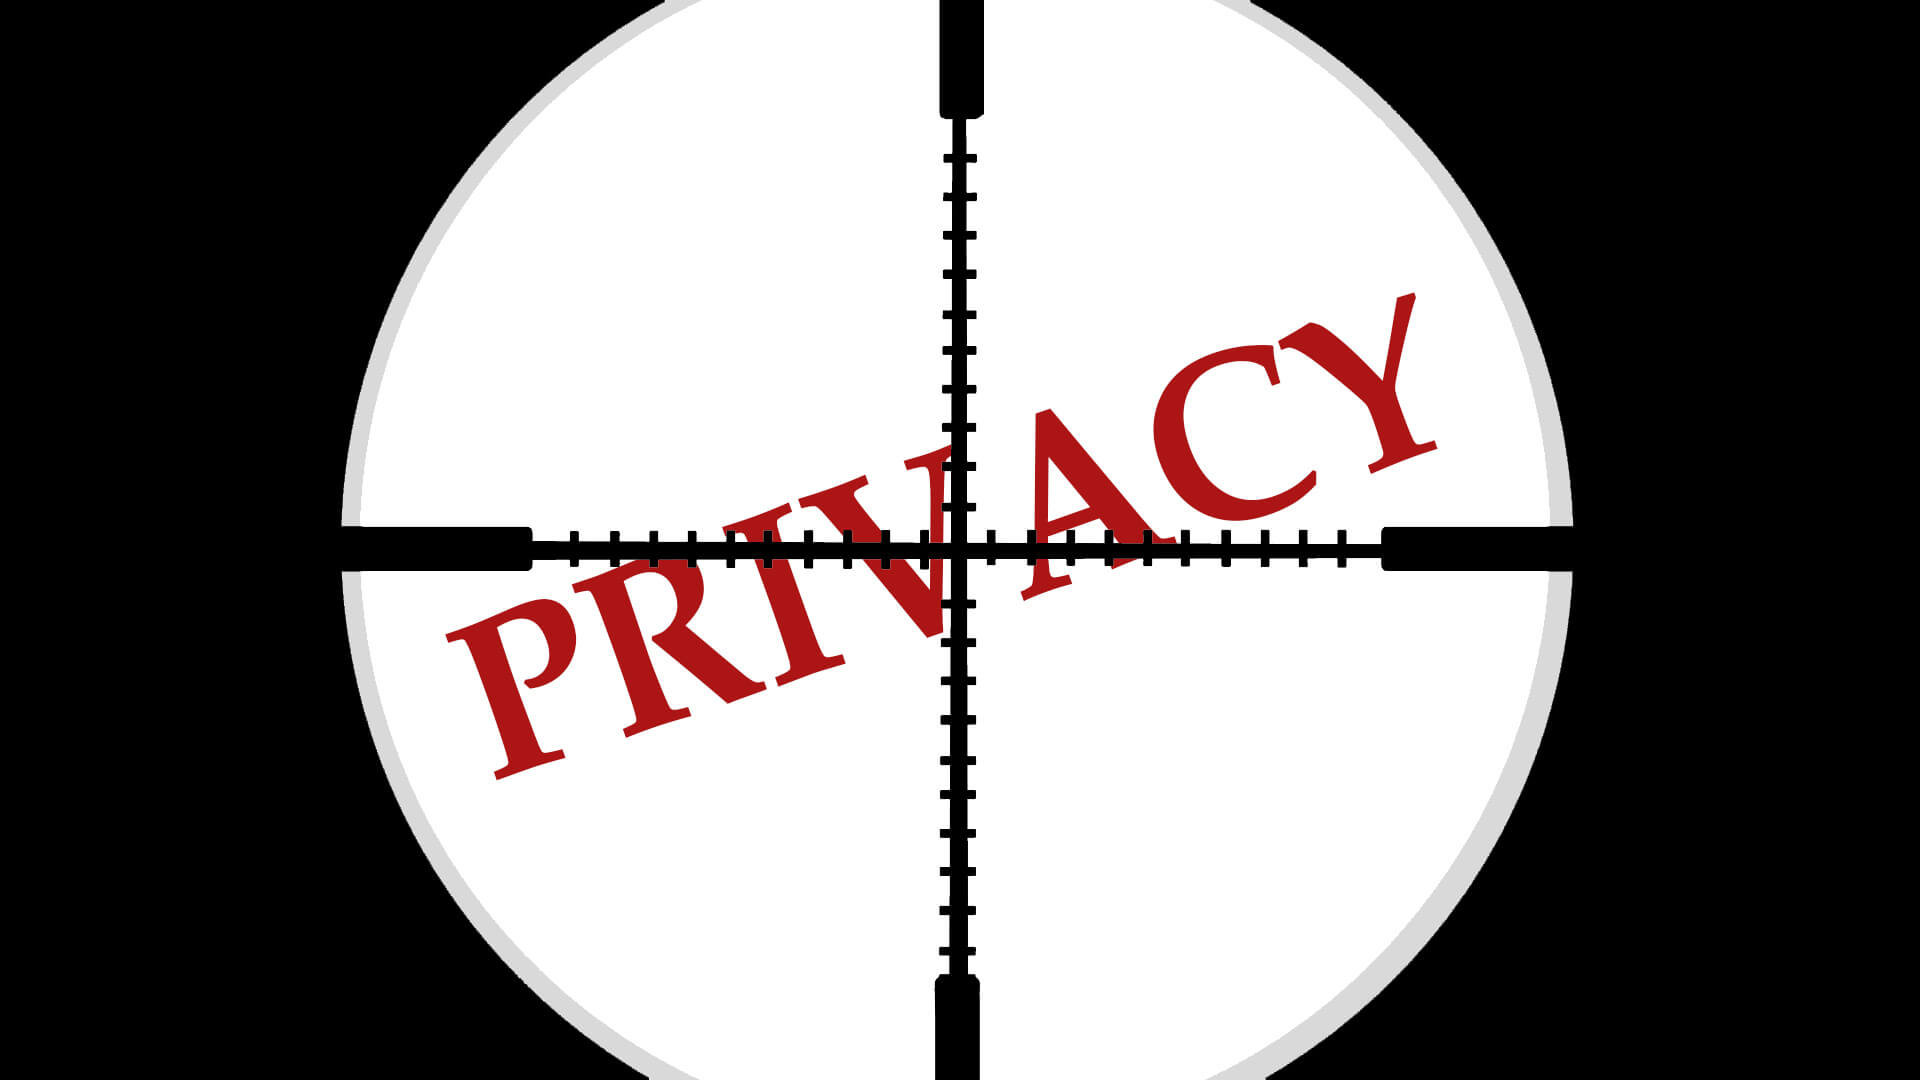 Privacy in the crosshairs: the word privacy is written in red letters and presented against a sillhouette mimicking what is visible in a gun sight.